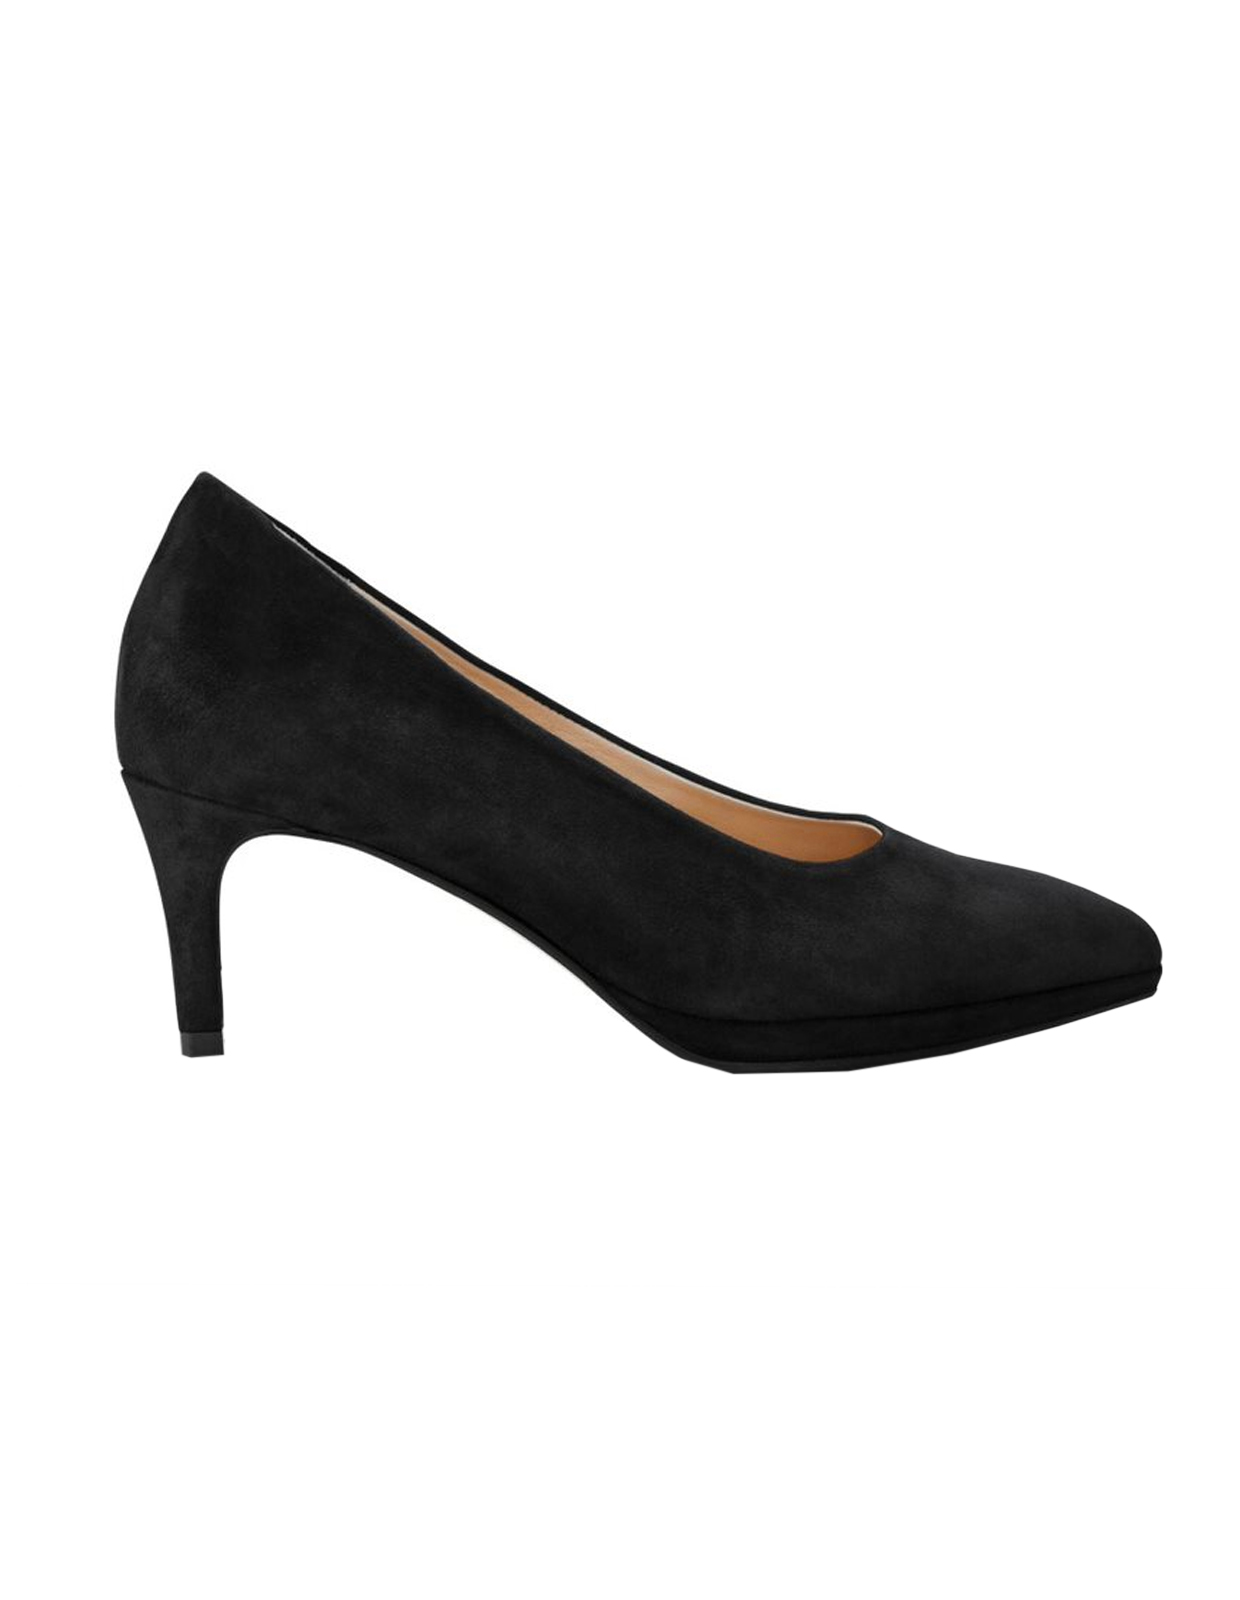 Denise pumps 6cm BLACKSUEDE